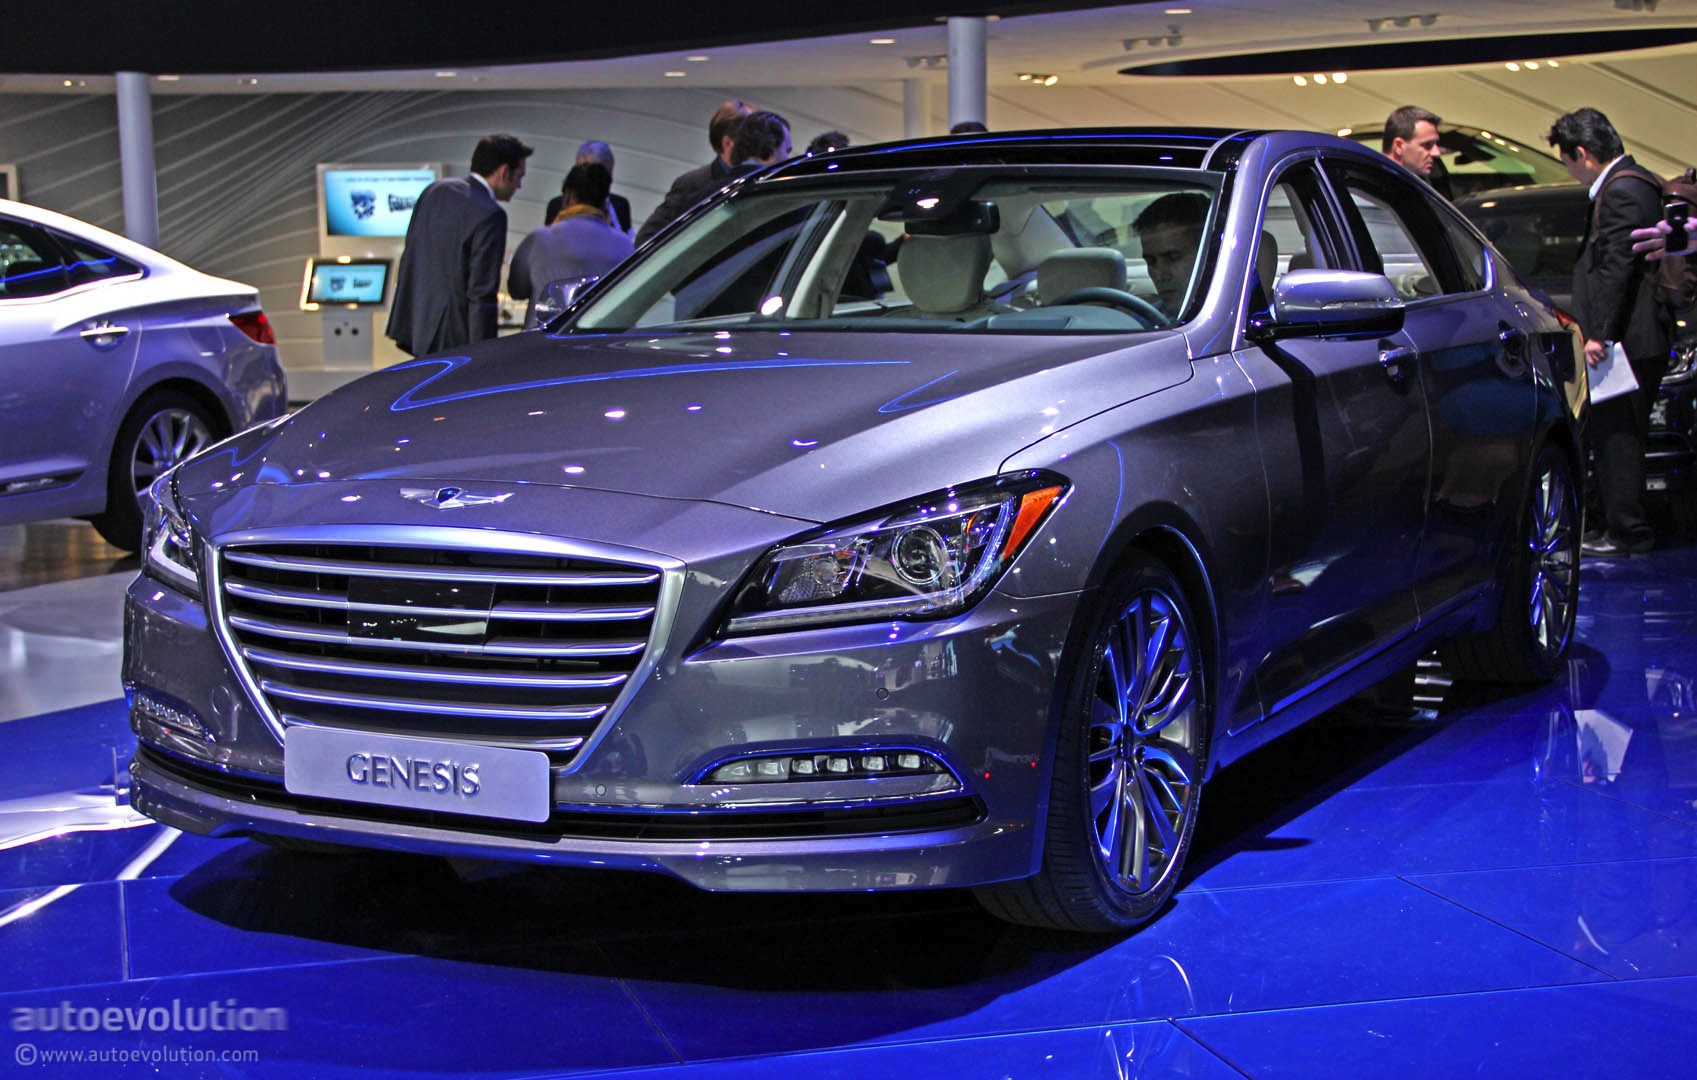 2015 Hyundai Genesis Luxury Sedan Revealed in Detroit ...